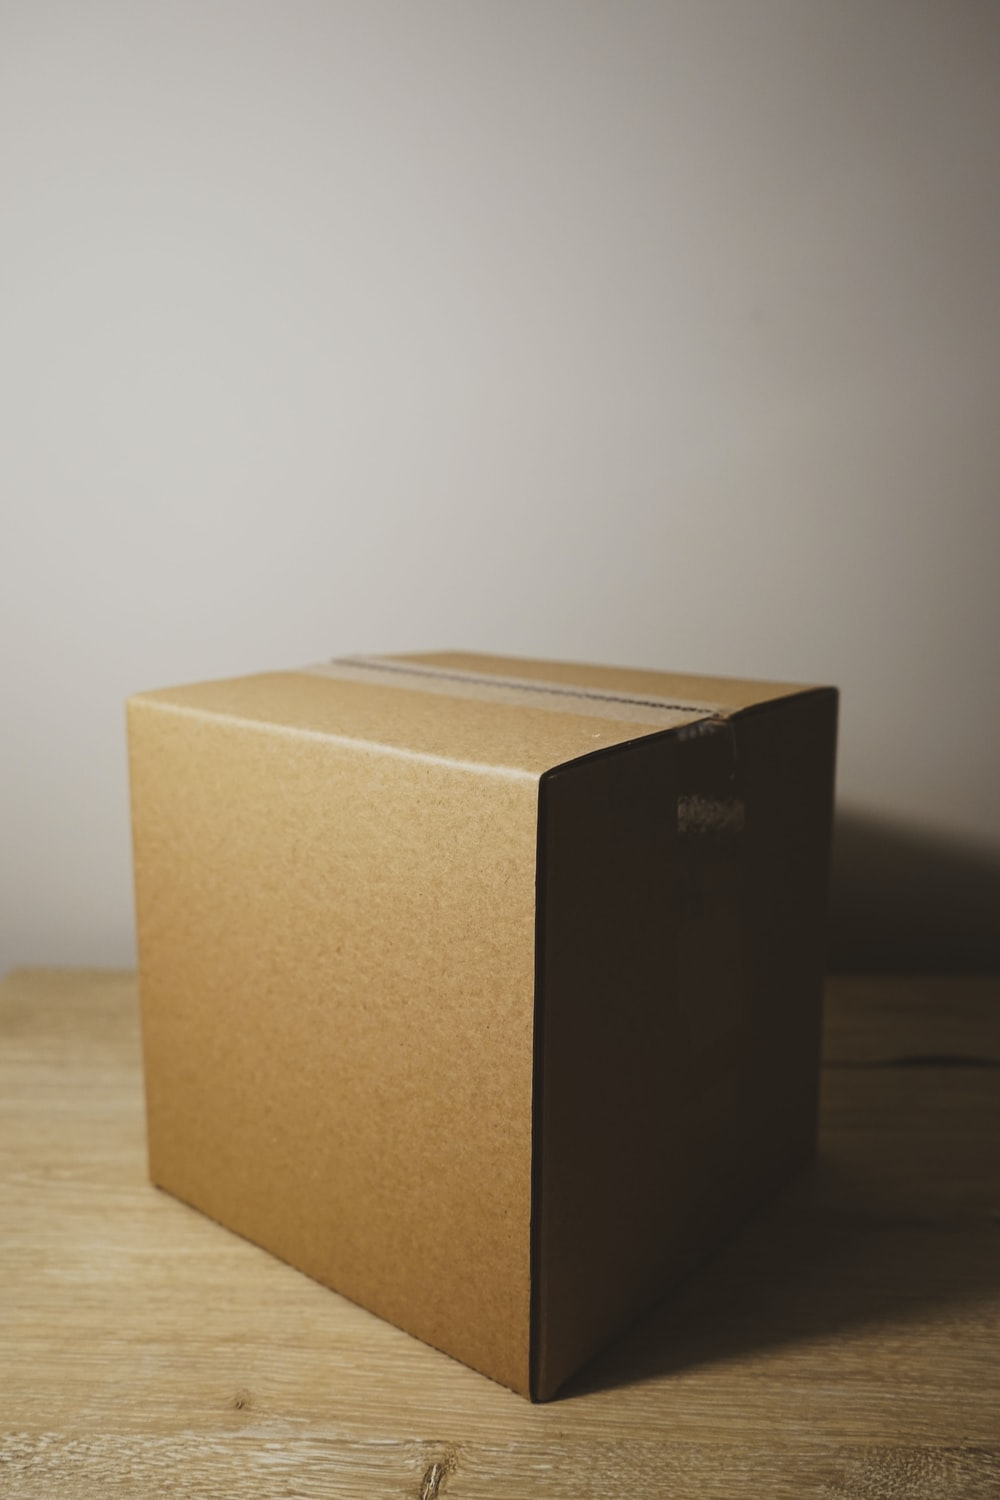 shallow focus photo of brown cardboard box